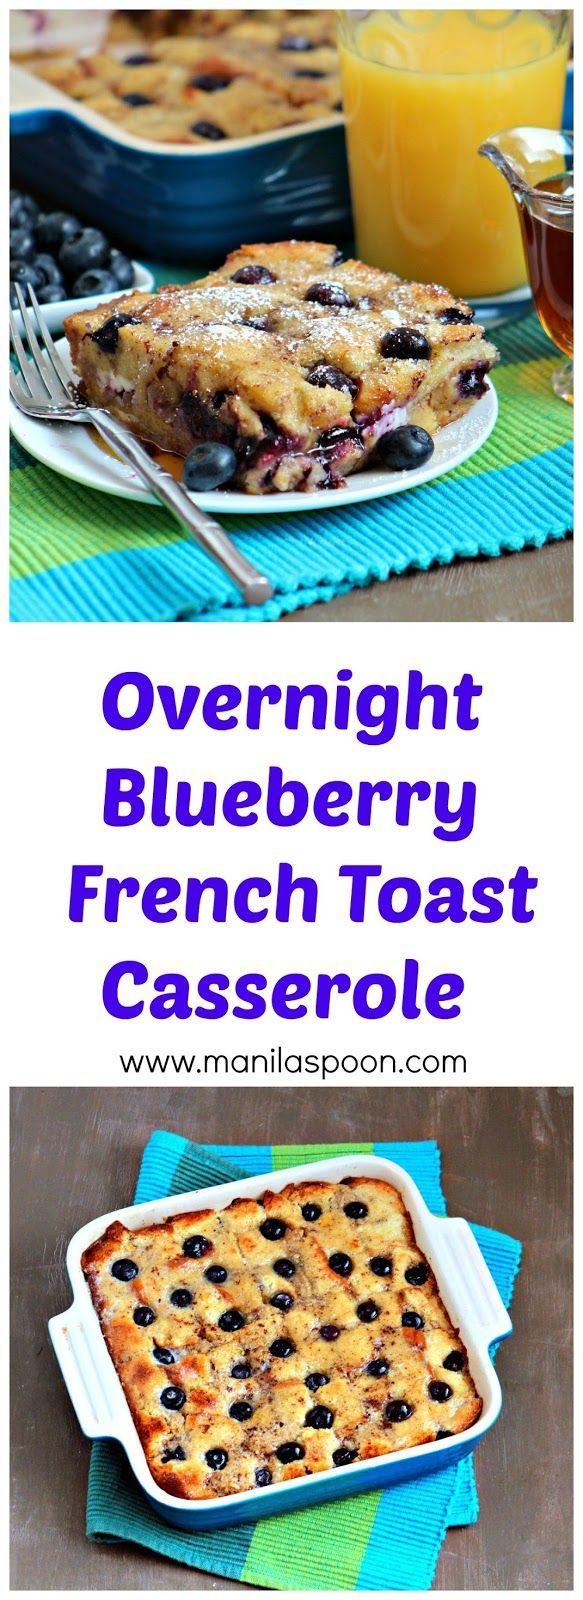 Juicy berries, crunchy walnuts plus yummy cream cheese and warmed up maple syrup make this a fantastic breakfast or brunch dish - Overnight Blueberry French Toast Casserole